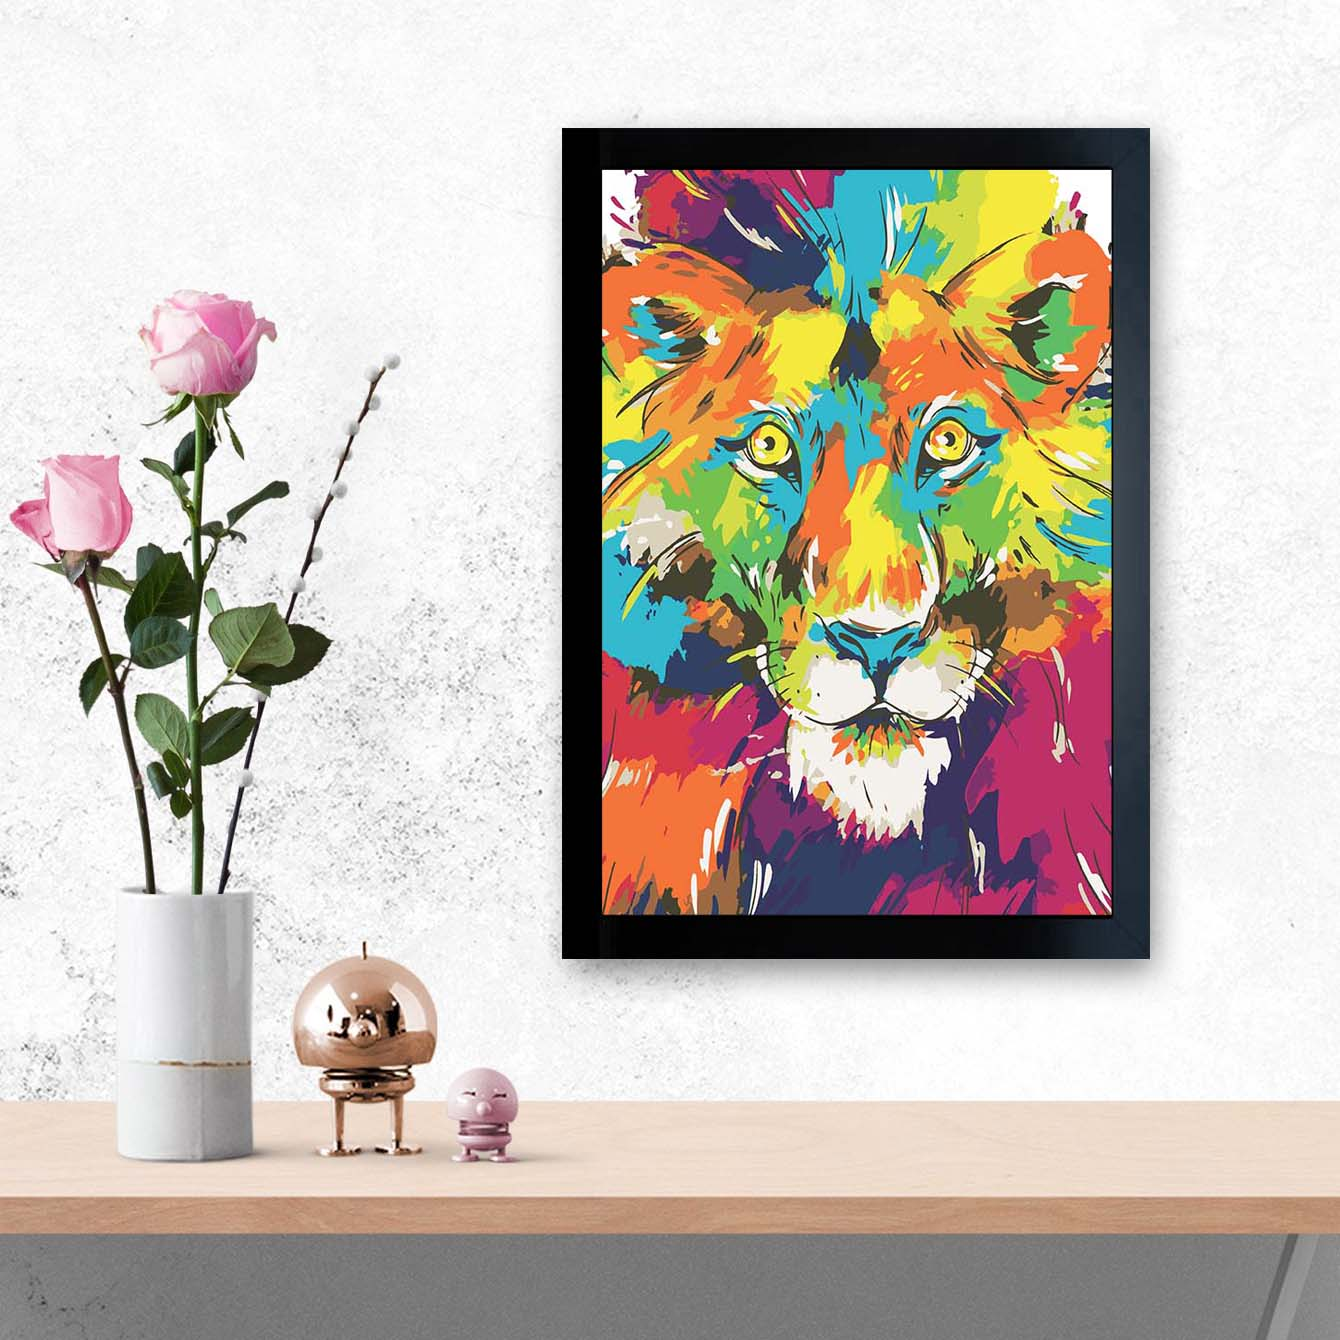 Lion Pop Art Glass Framed Posters & Artprints